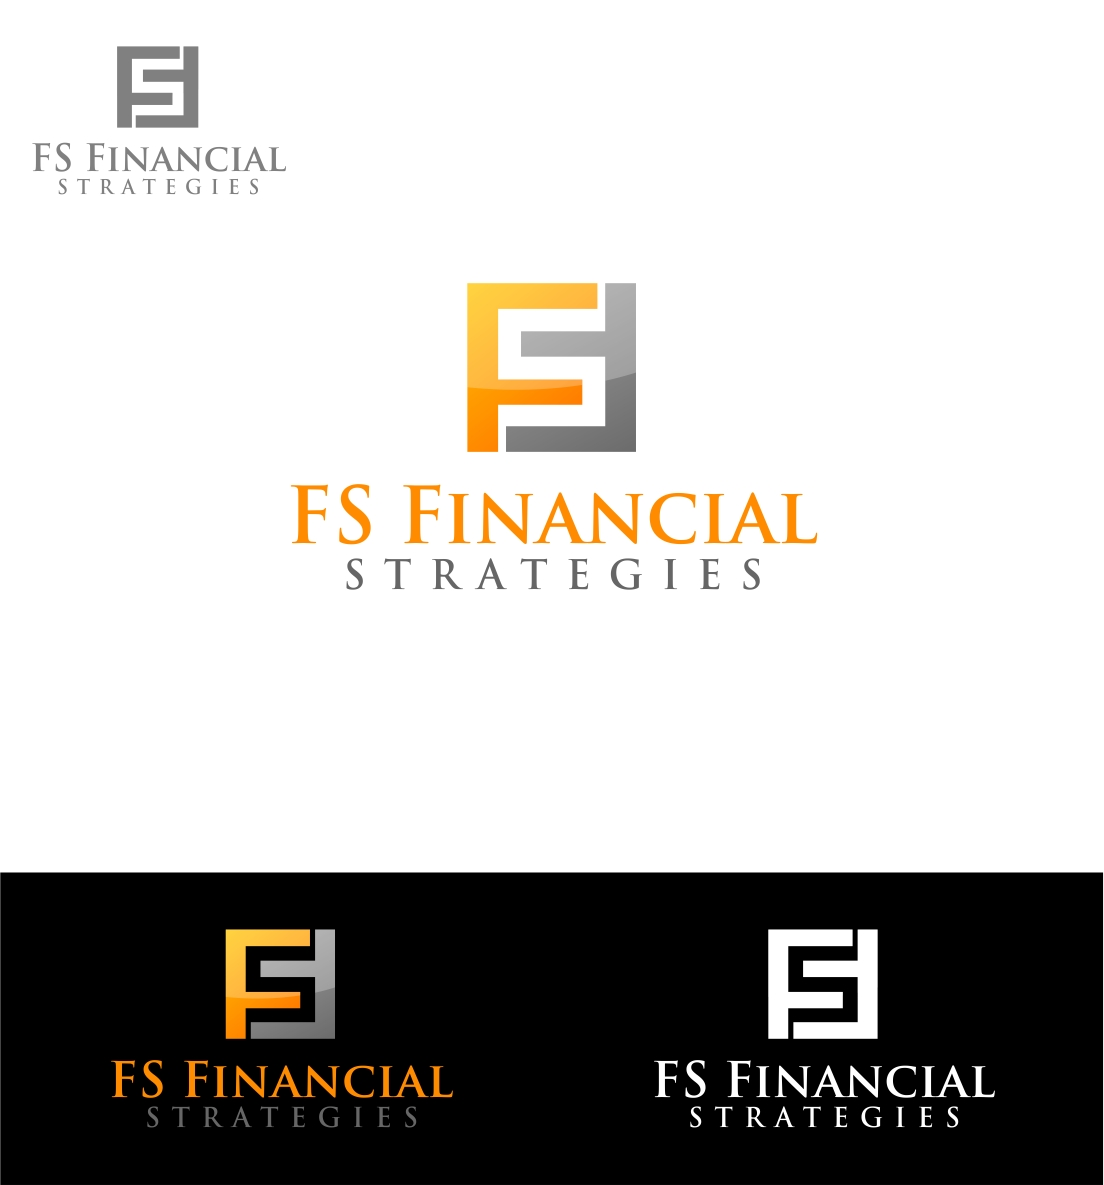 Logo Design by haidu - Entry No. 190 in the Logo Design Contest Logo Design Needed for Exciting New Company FS Financial Strategies.